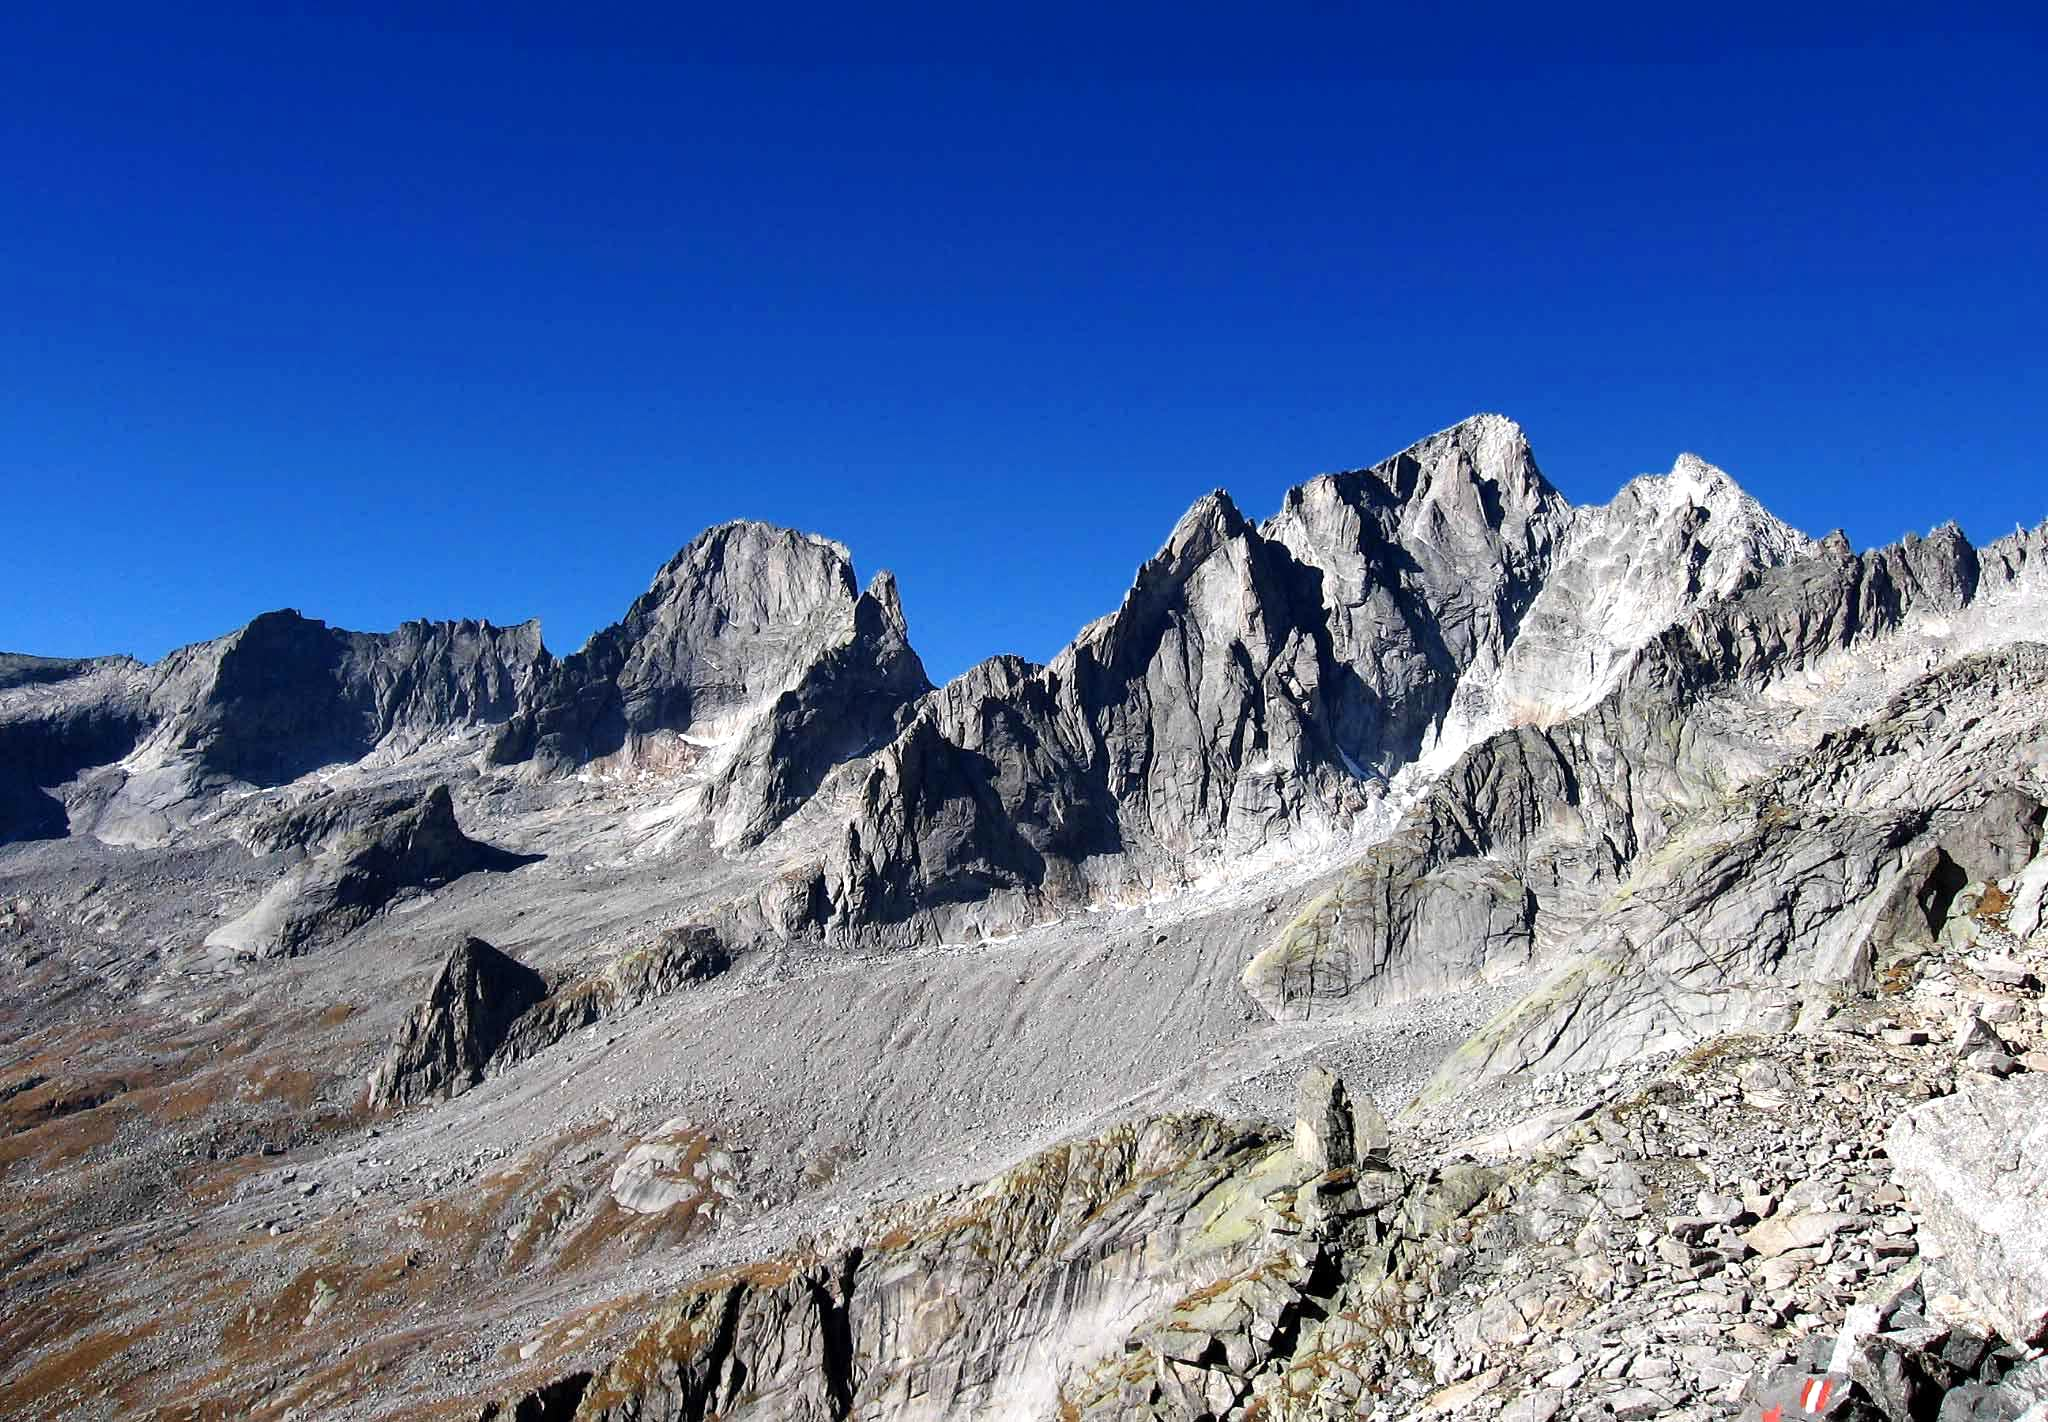 Alpine refuges of Val Masino alps